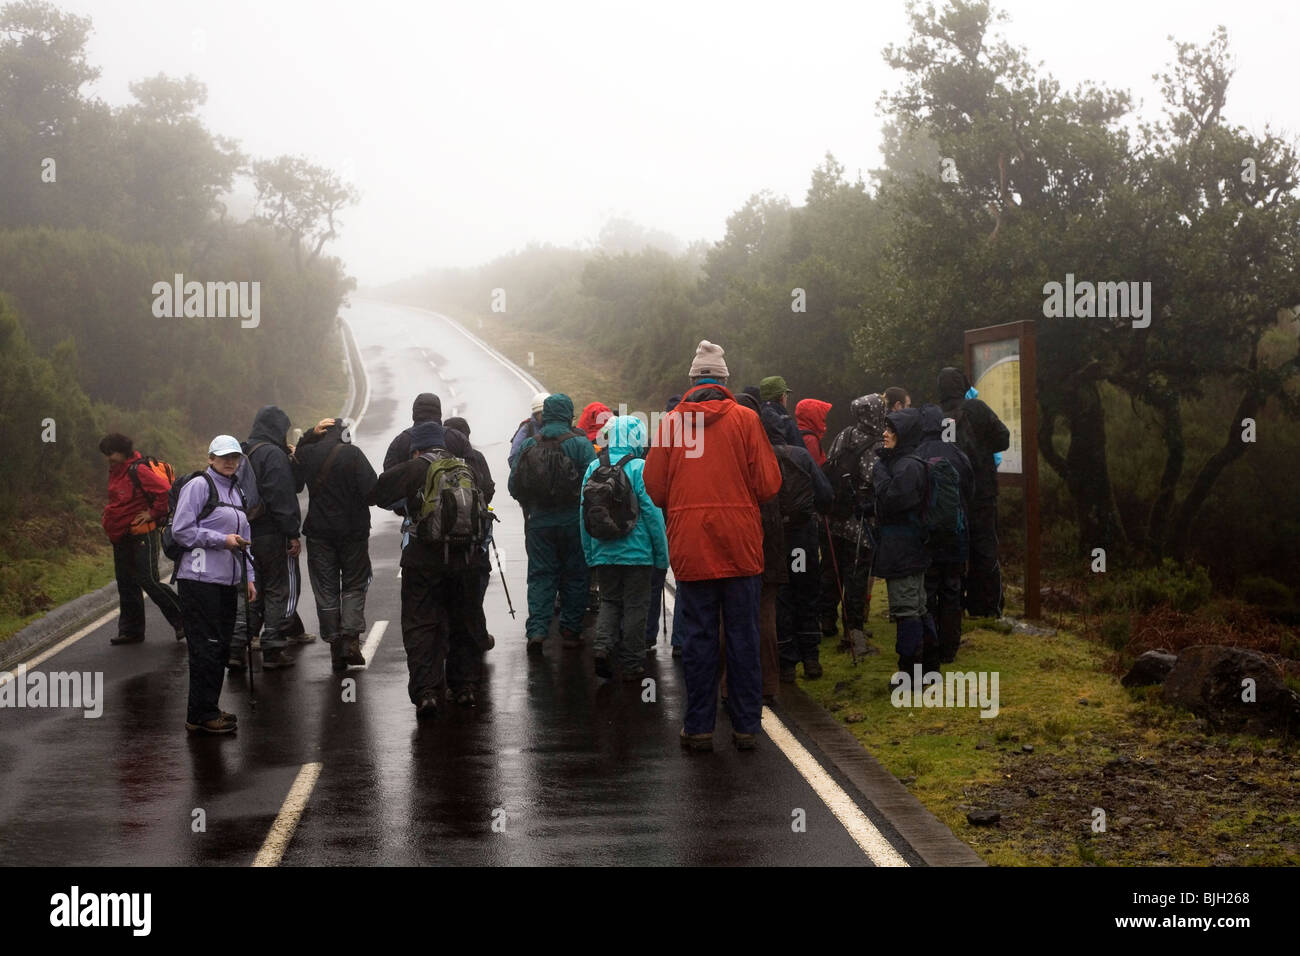 Walkers take part in the Madeira Islands Walking Festival of 2010. - Stock Image